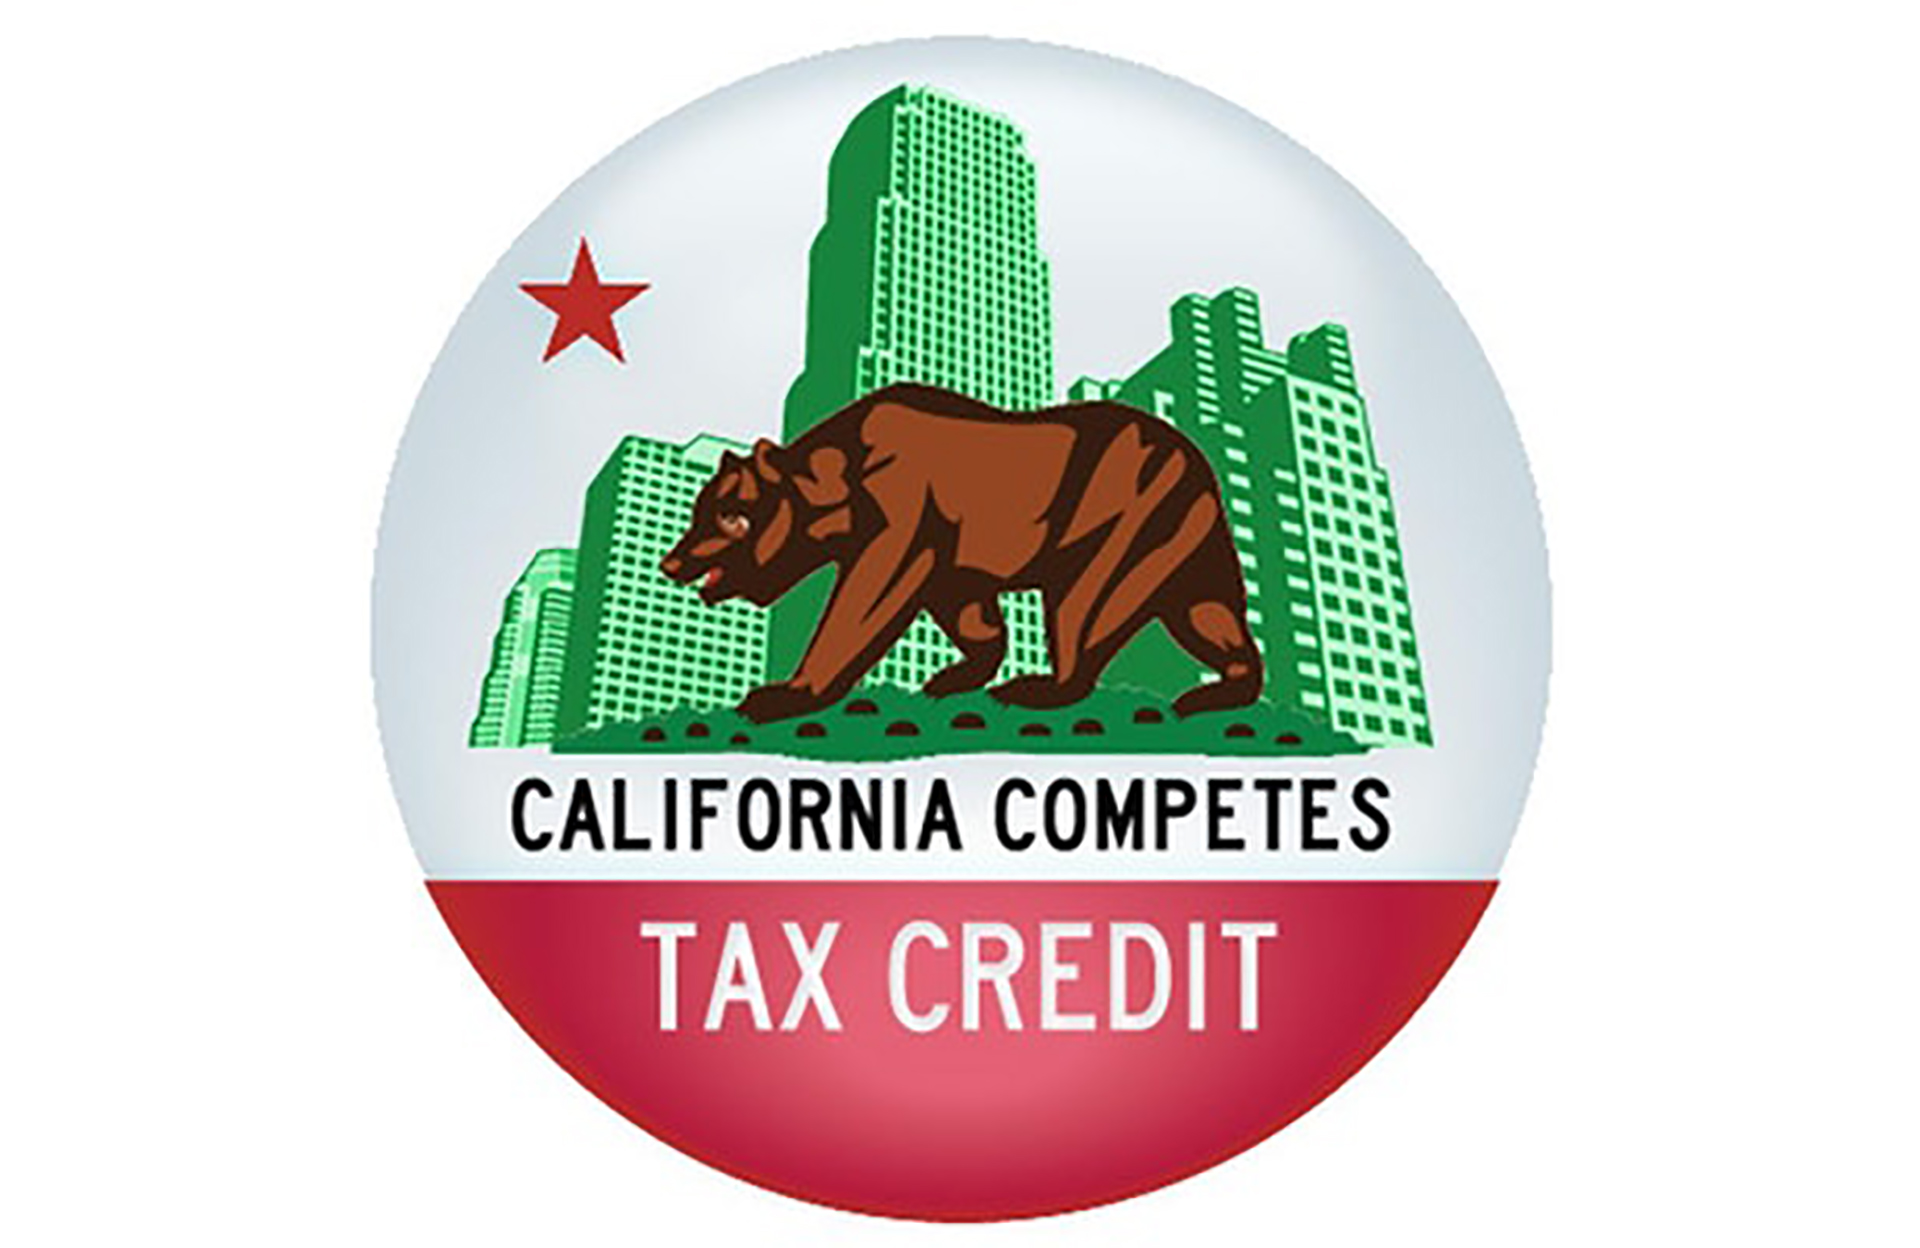 GO-Biz opens application period for CalCompetes Tax Credits